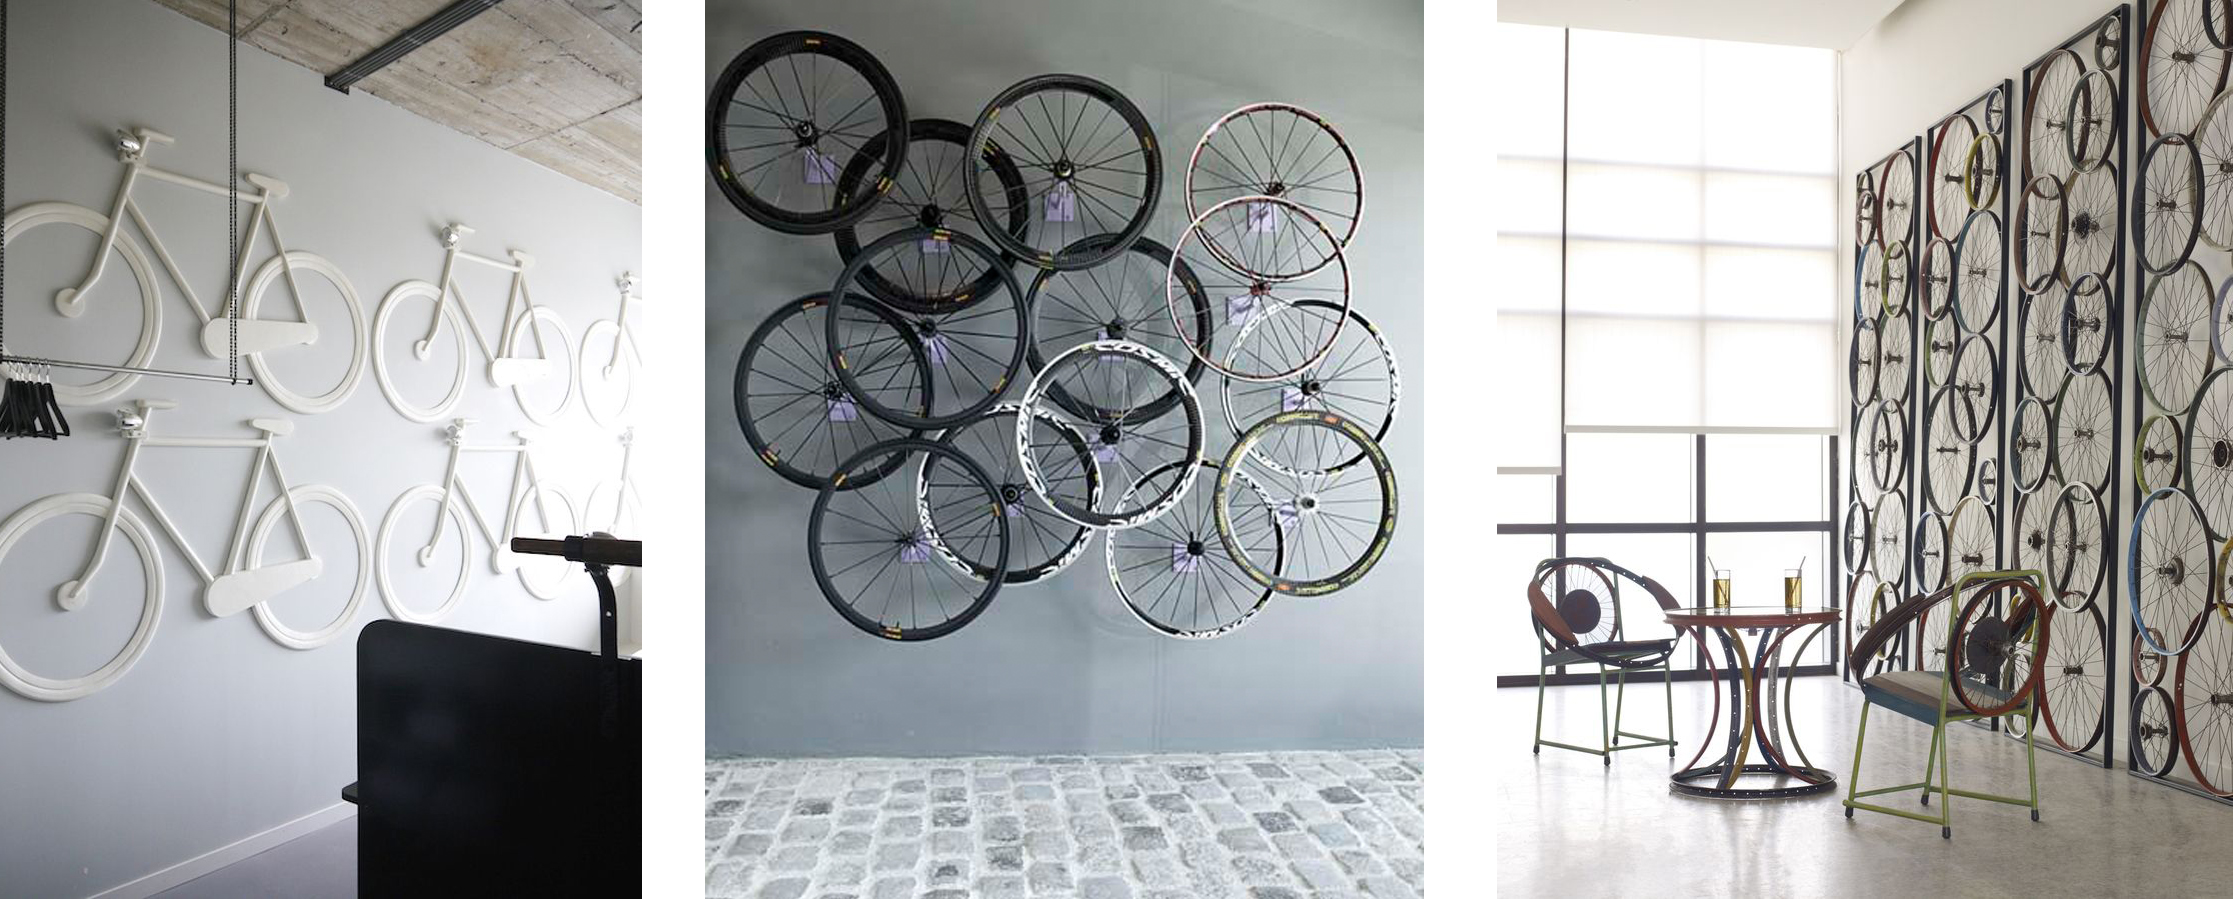 Reutilizar para decorar bicicletas casa y mantel - Decorar la pared ...